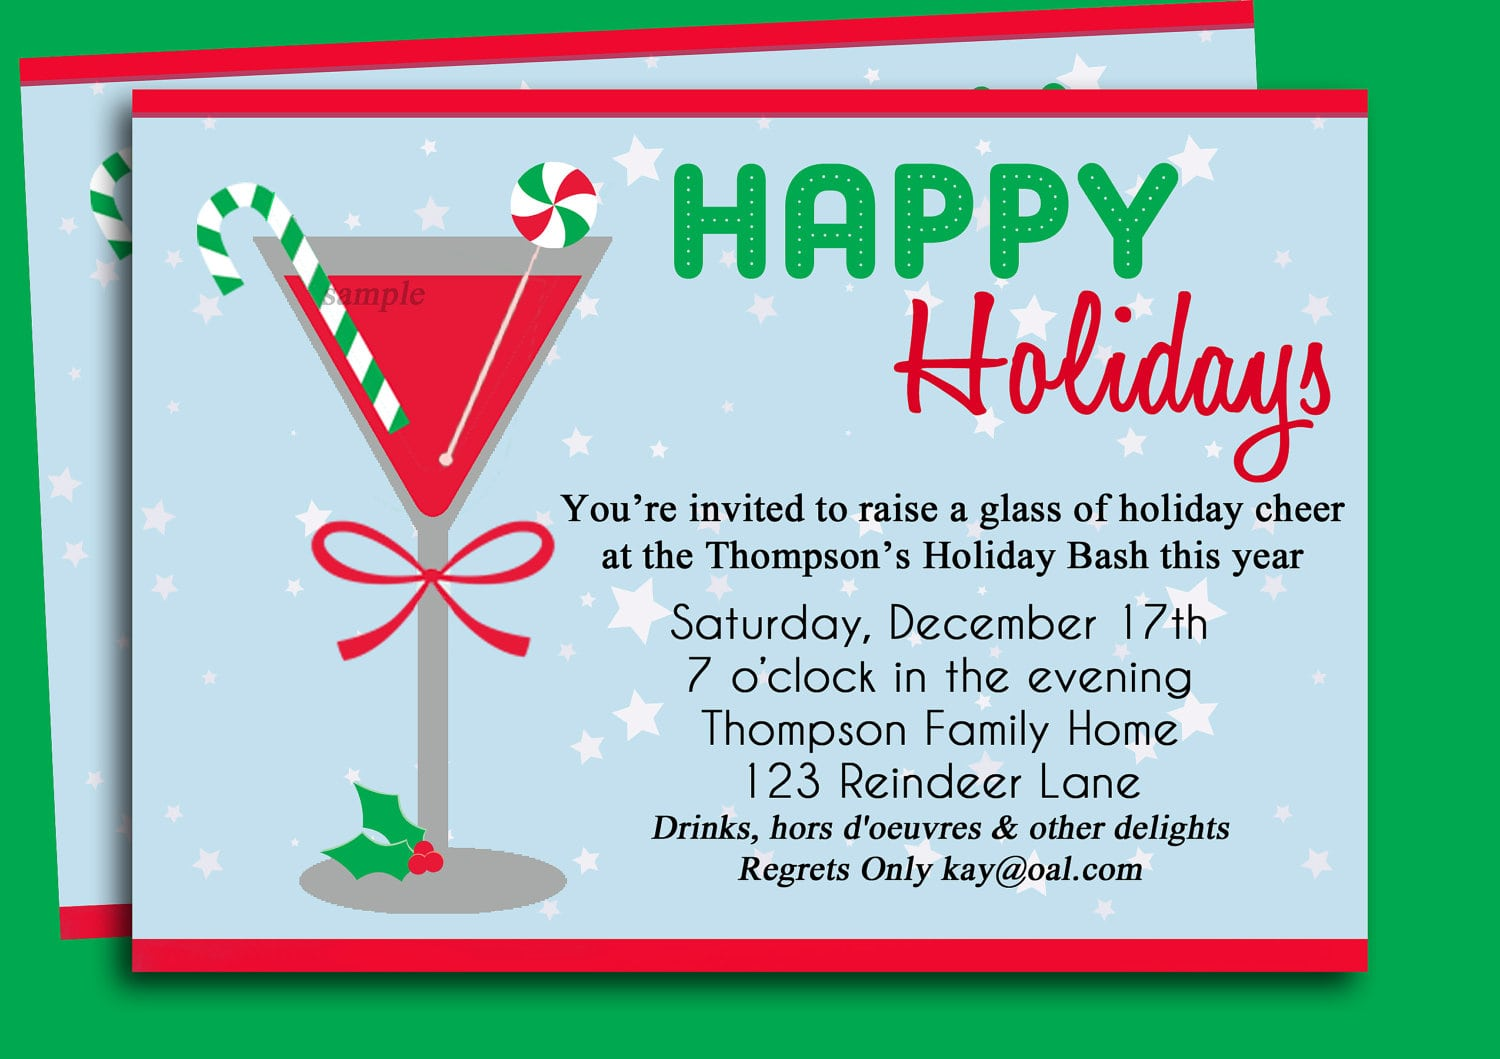 Corporate Christmas Party Invitation Wording